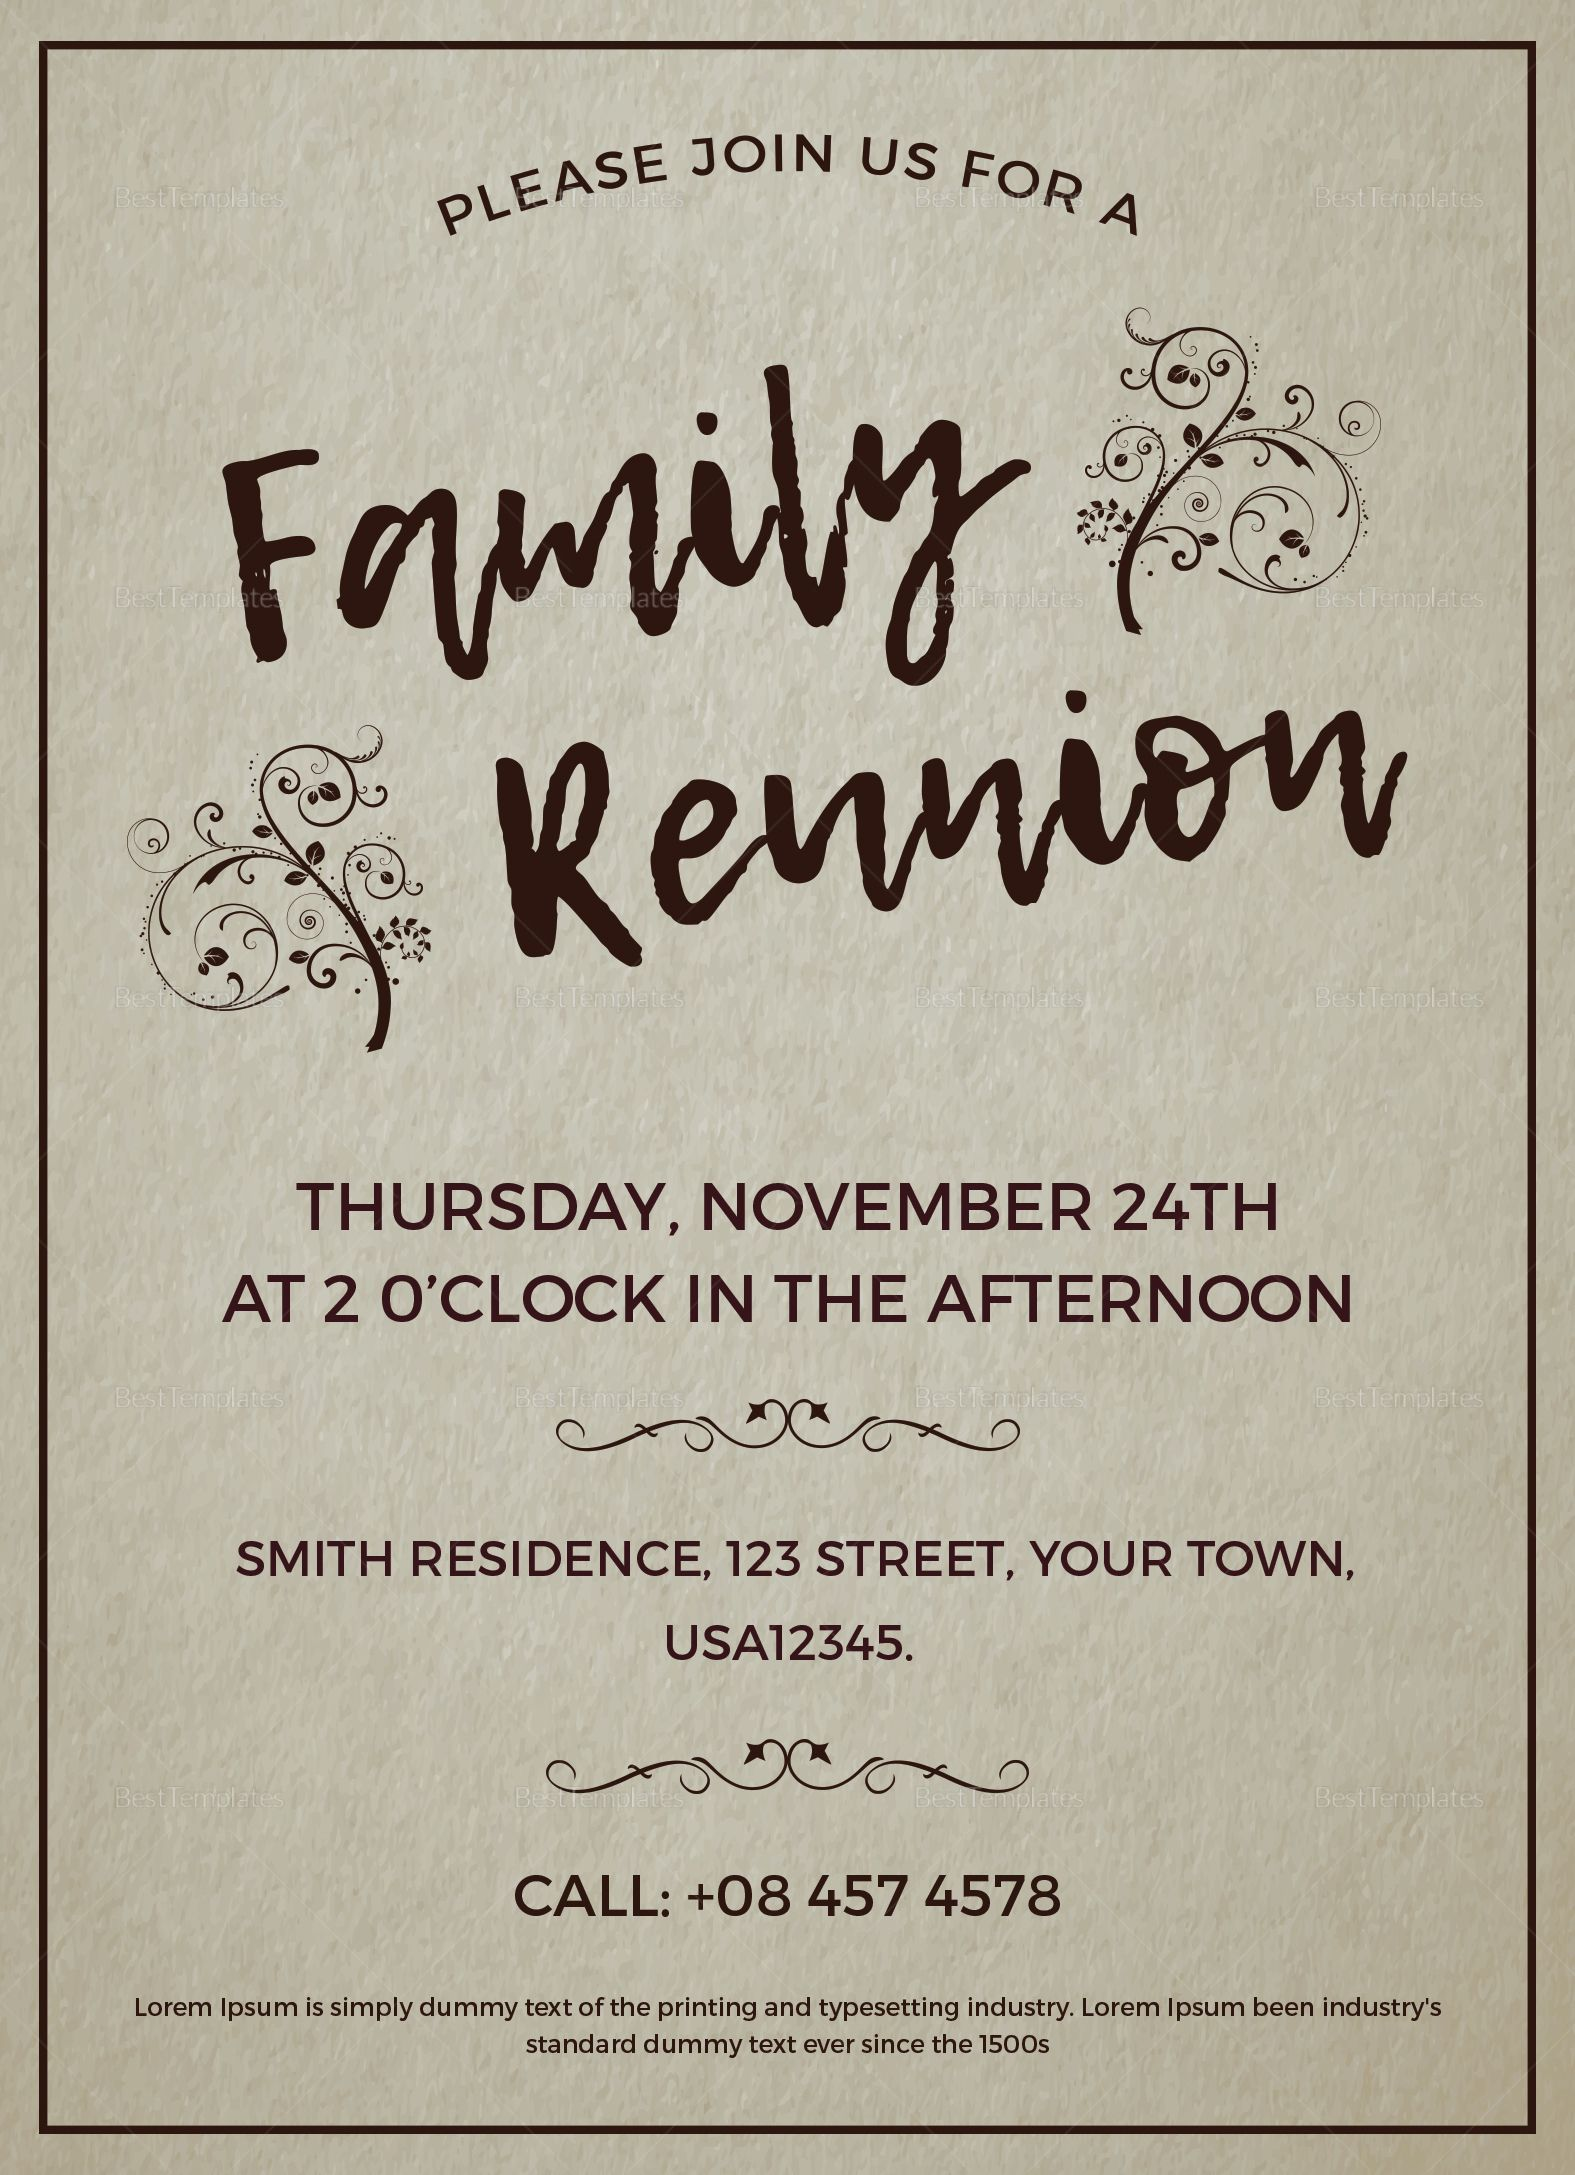 006 Stupendou Family Reunion Invitation Template Free High Def  For Word OnlineFull